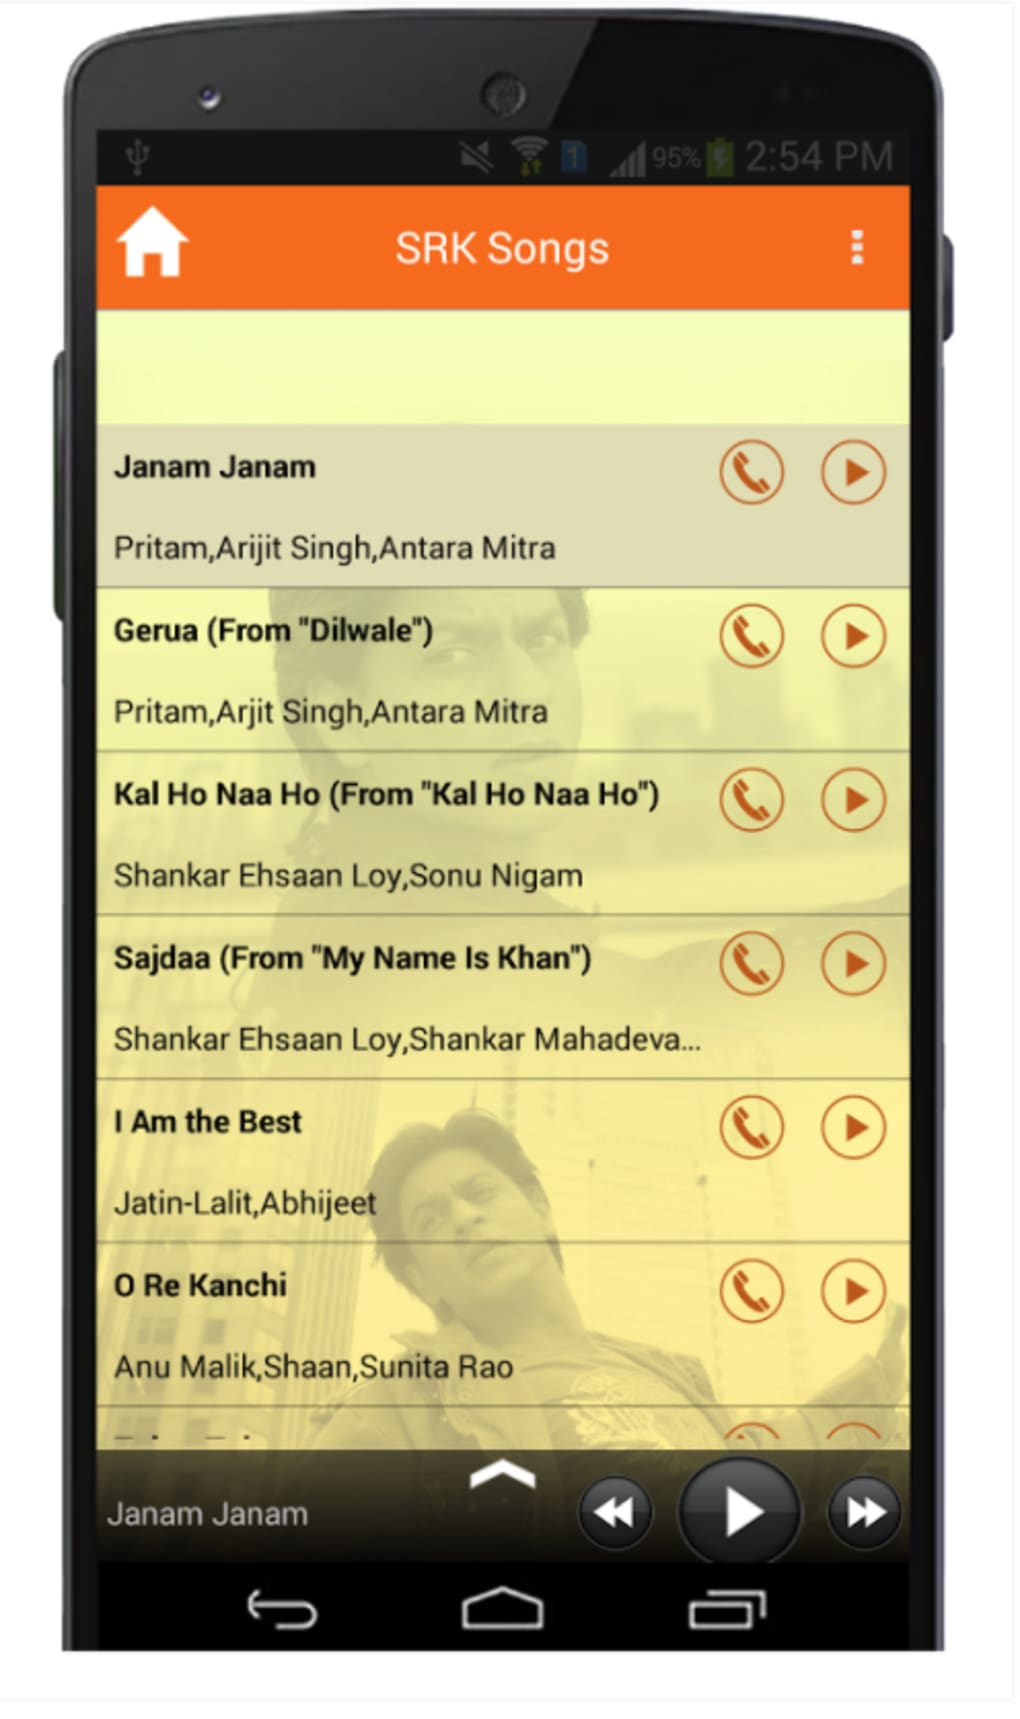 SRK Hindi Movie Songs for Android - Download